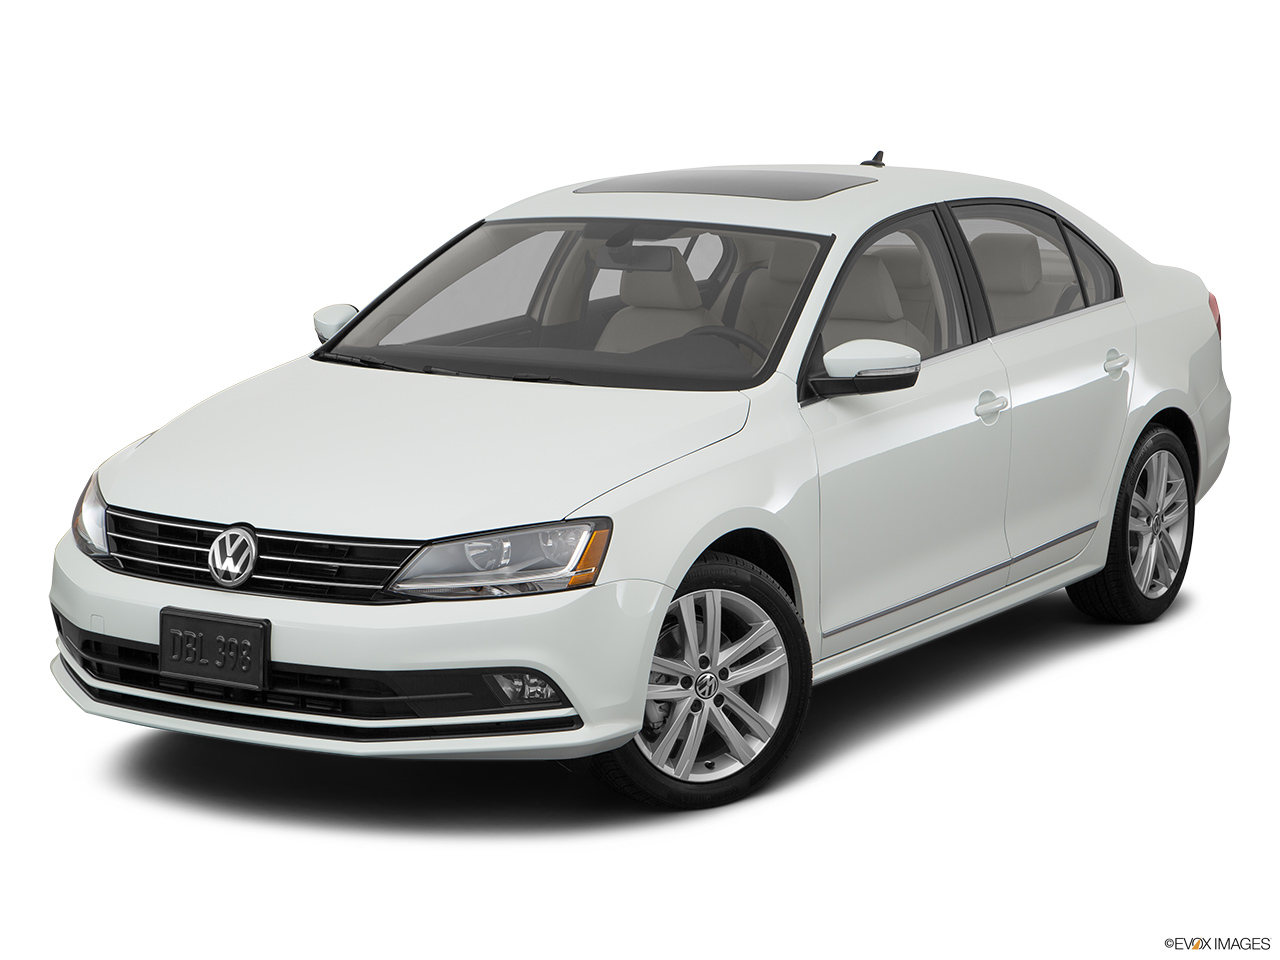 Volkswagen Jetta 2018 2.5L SEL in UAE: New Car Prices ...